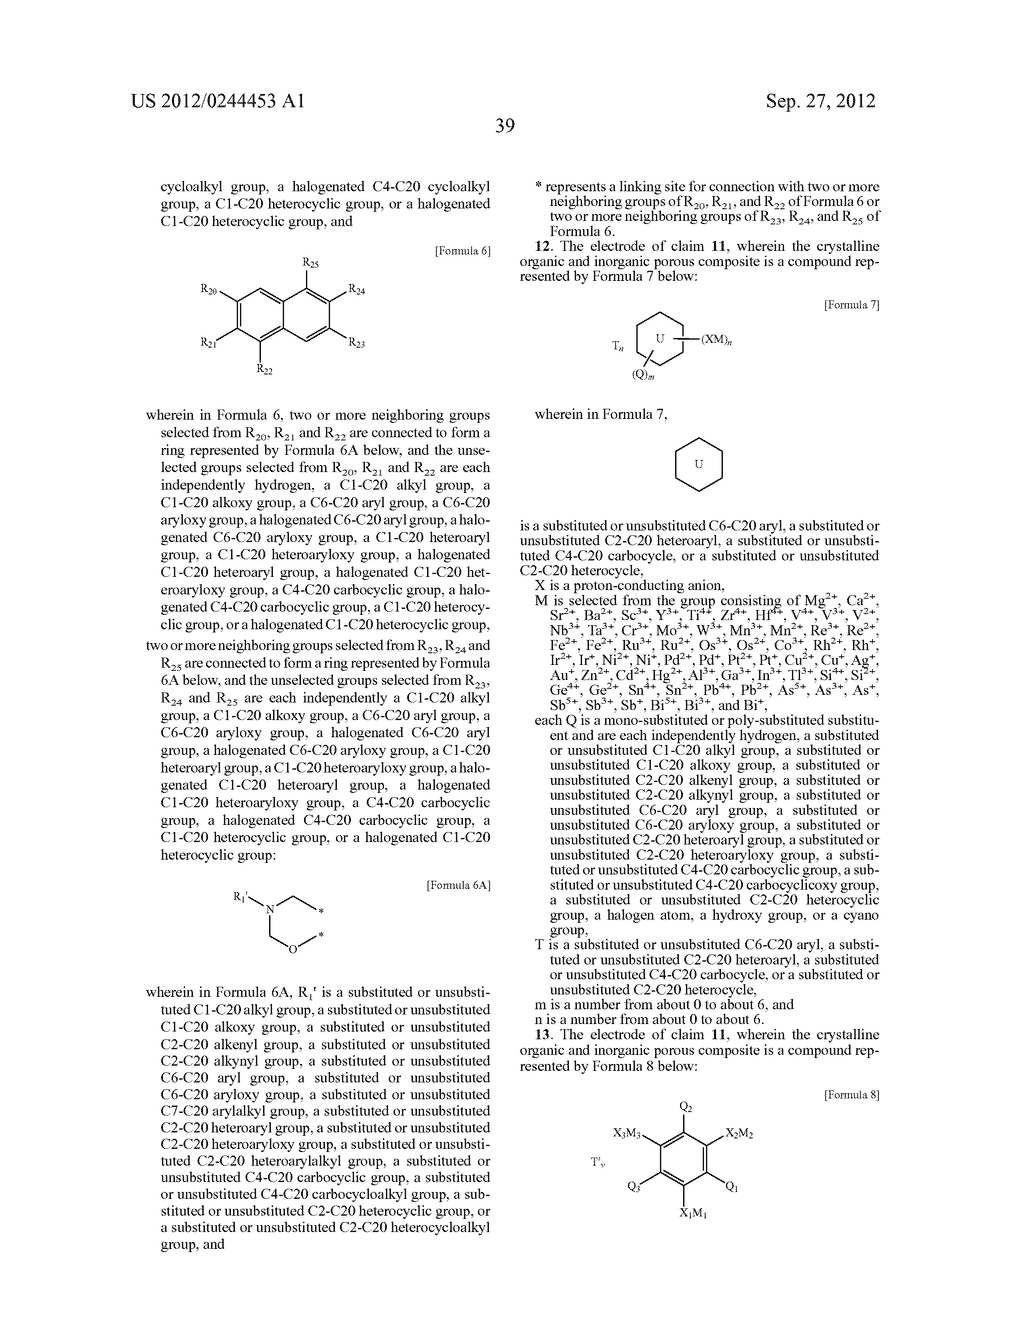 ELECTROLYTIC MEMBRANE FOR FUEL CELL, ELECTRODE FOR FUEL CELL, AND FUEL     CELL INCLUDING THE ELECTROLYTIC MEMBRANE AND/OR THE ELECTRODE - diagram, schematic, and image 45